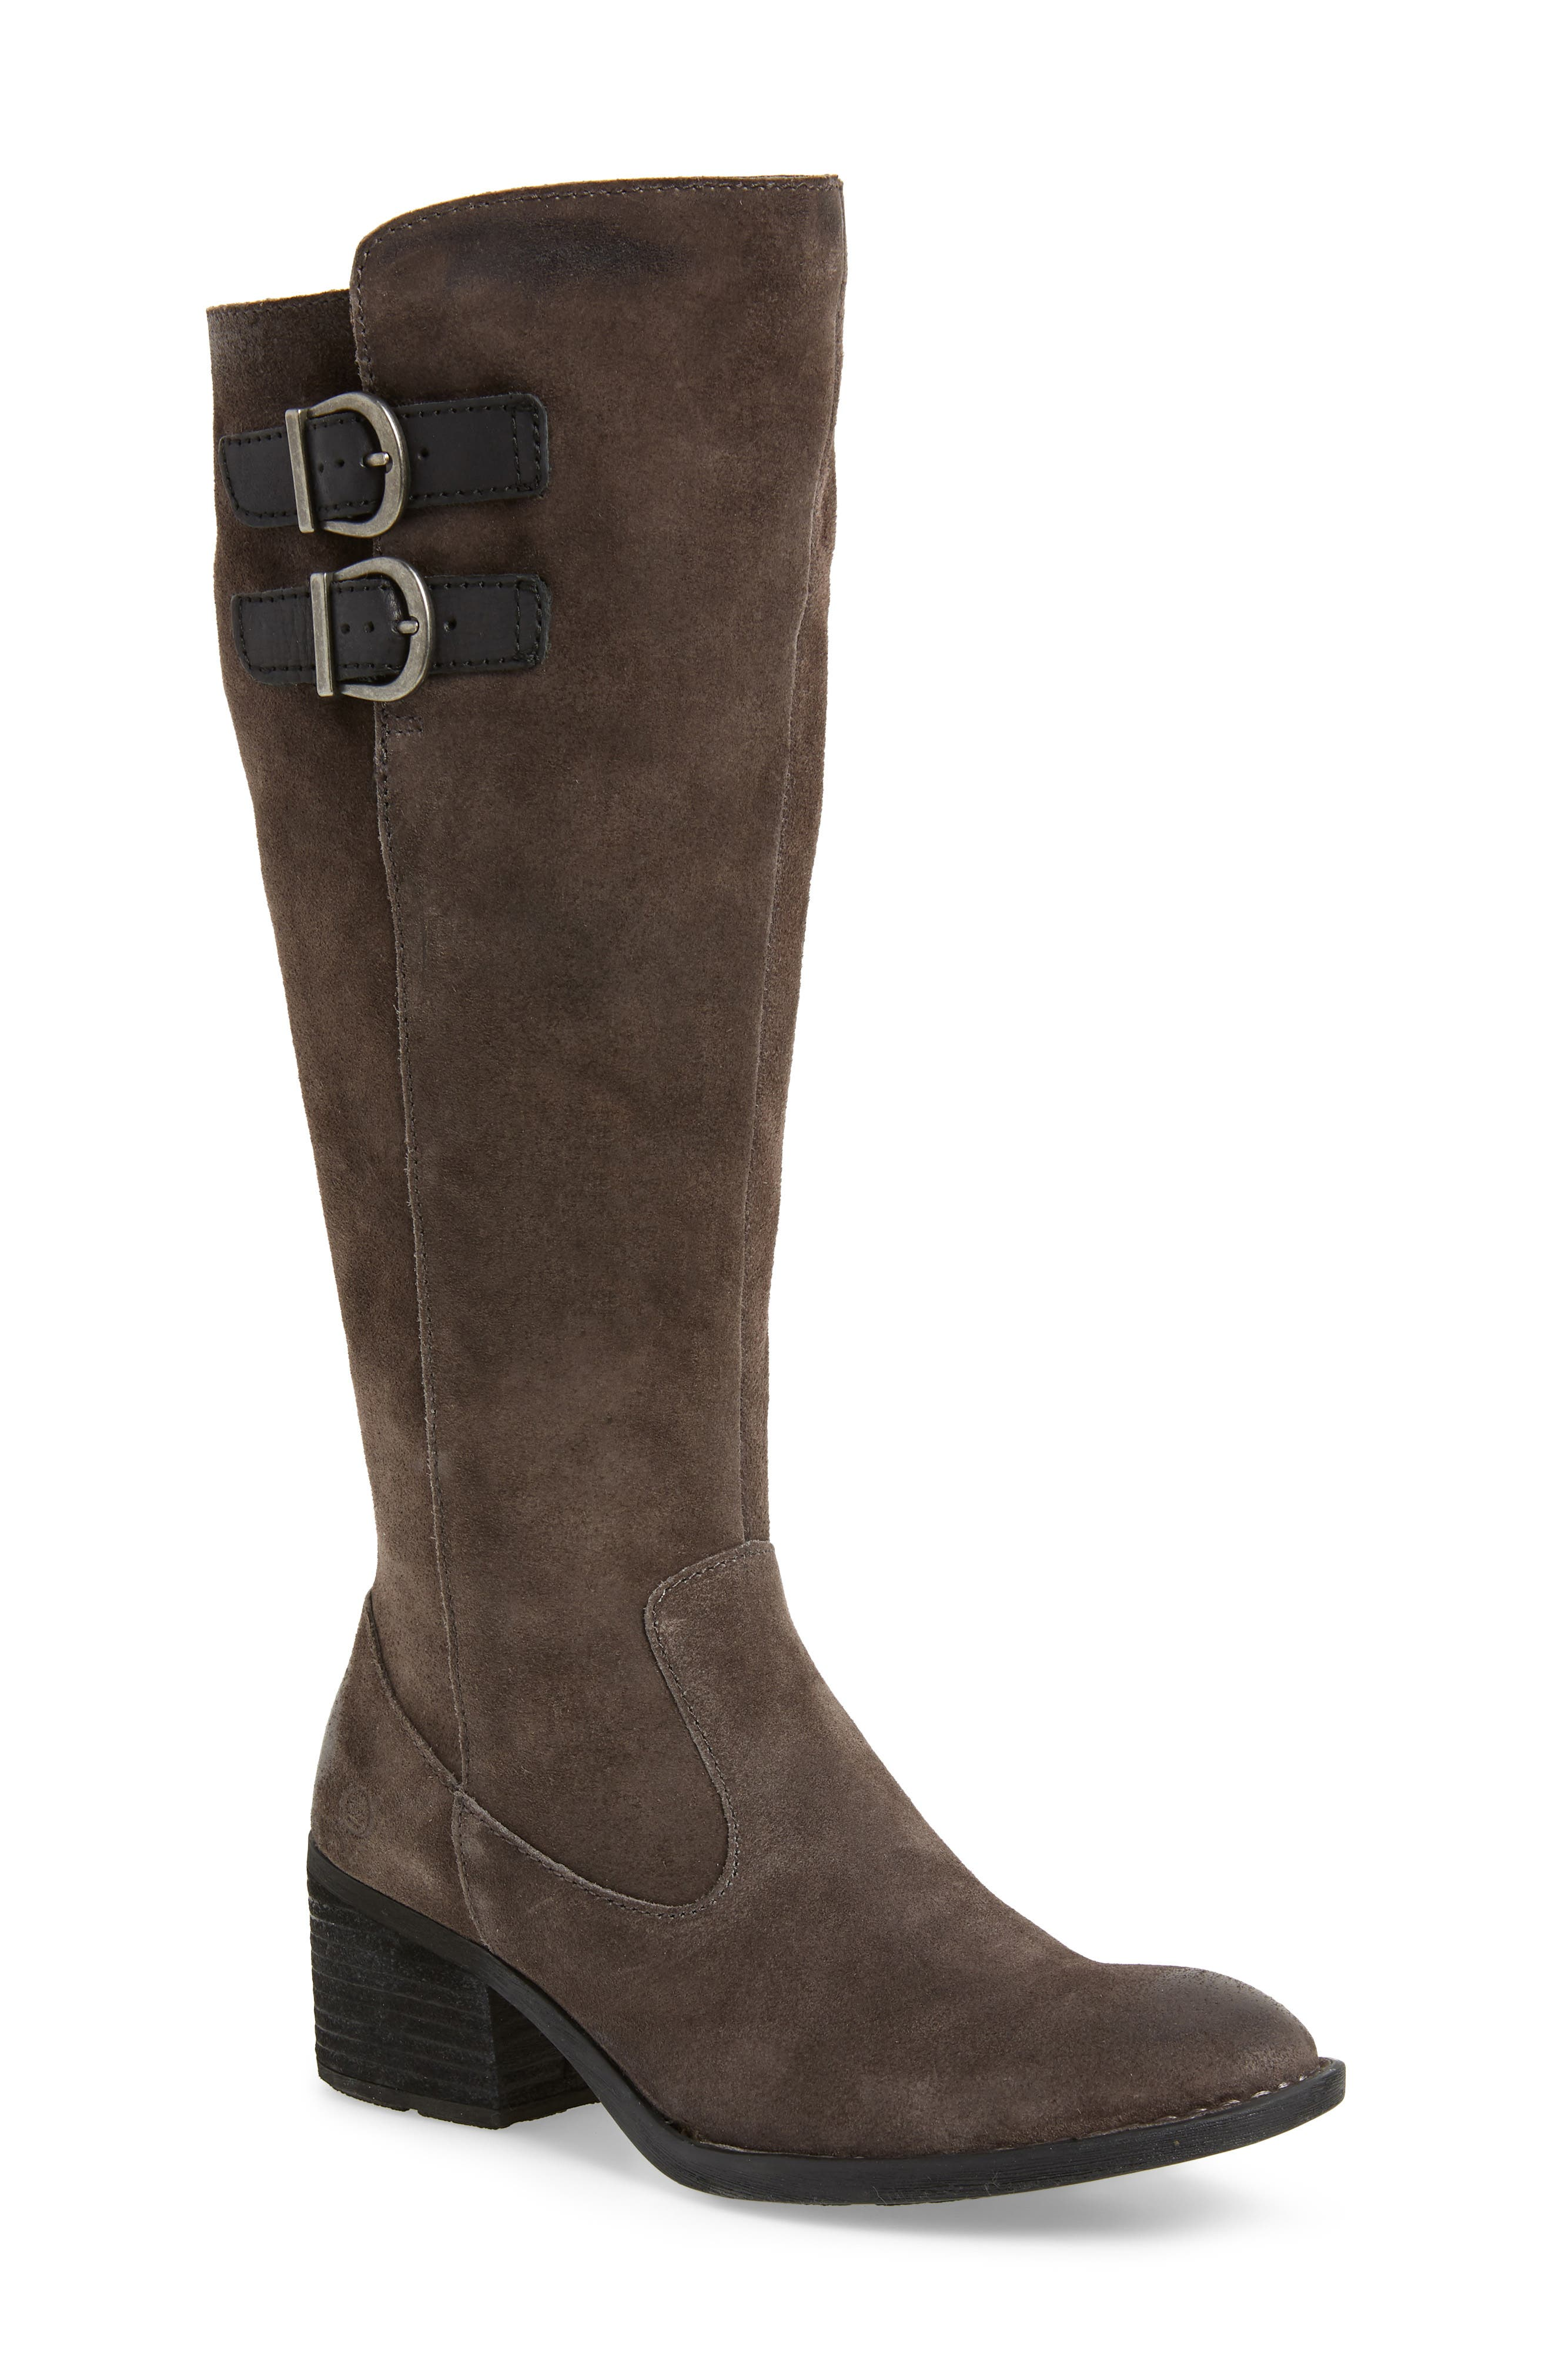 B?rn Basil Knee High Boot, Wide Calf- Grey